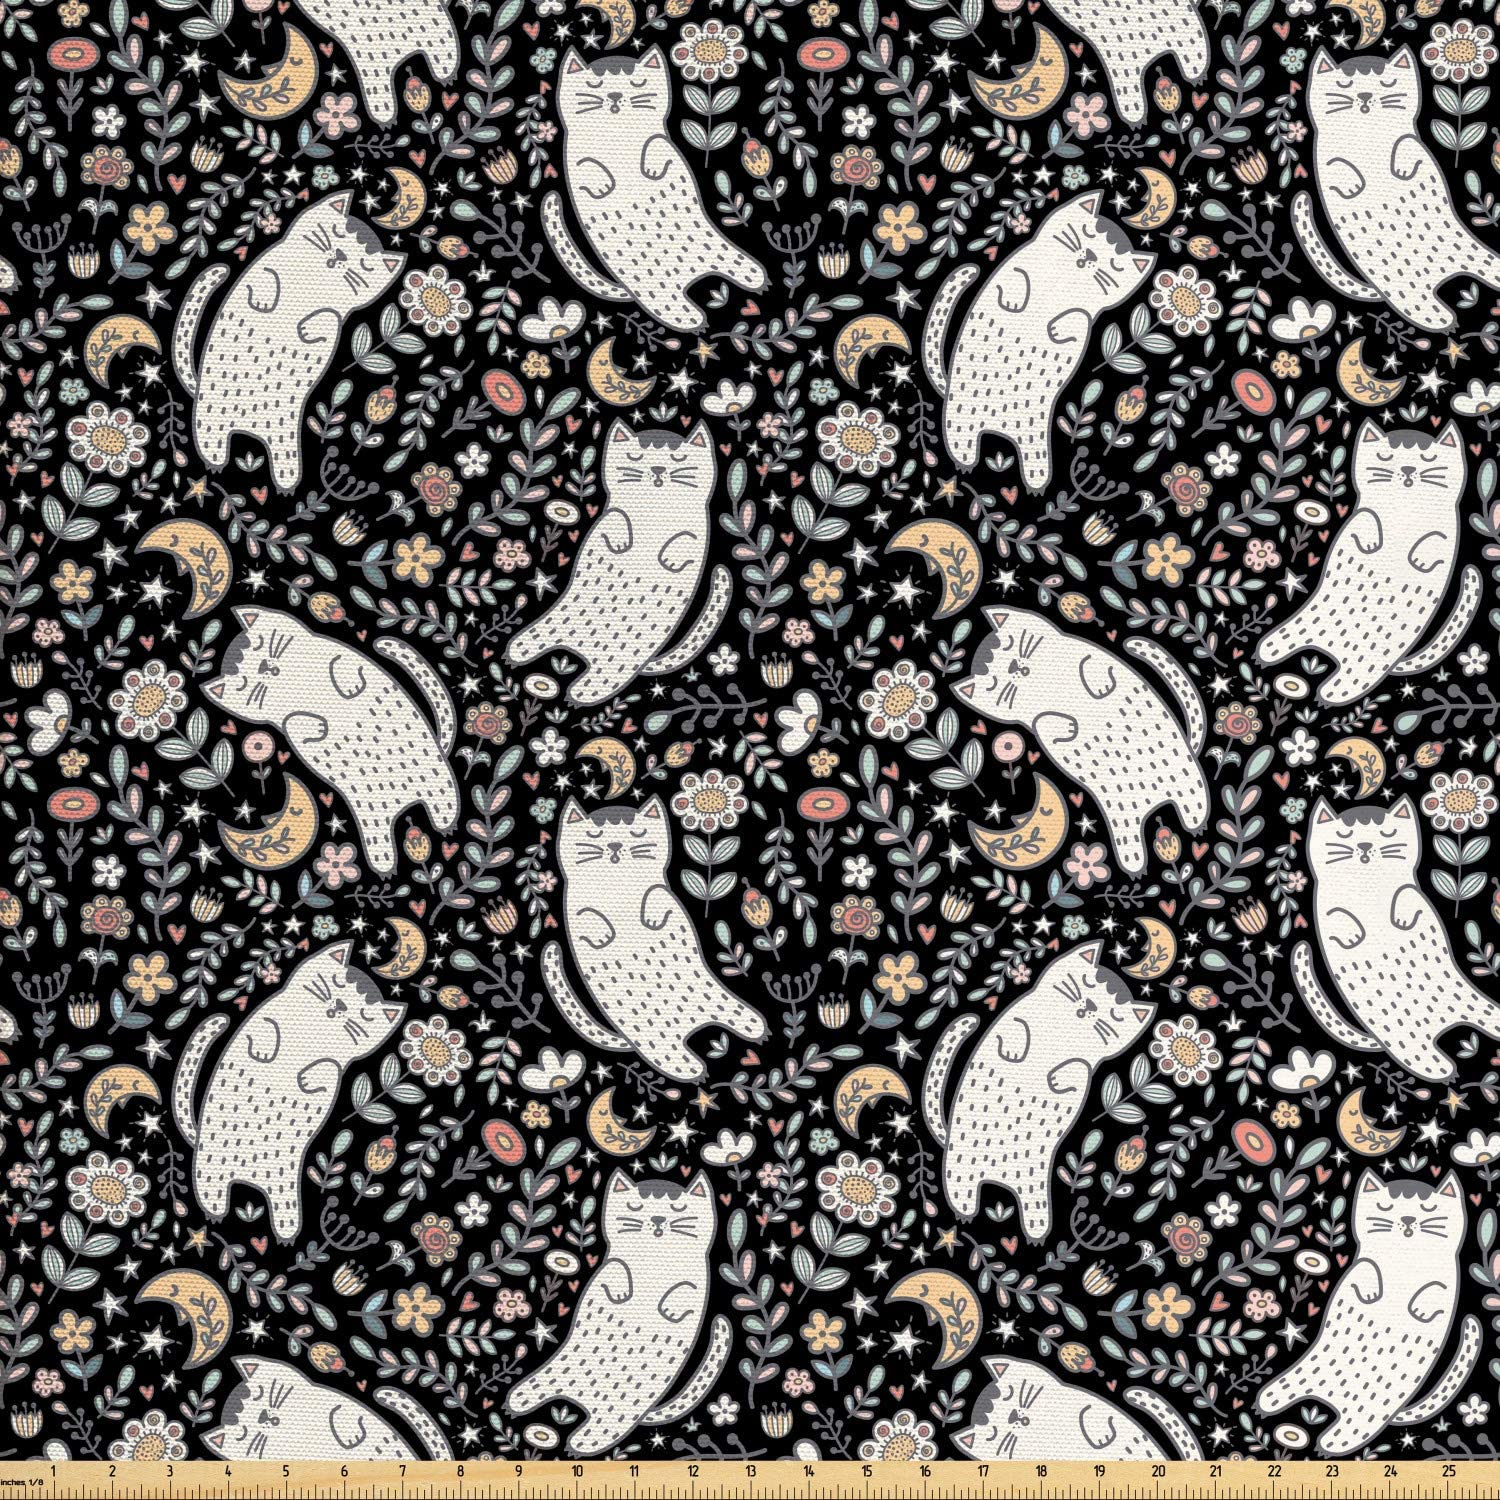 Lunarable Kittens Fabric by The Yard, Repetitive Jumble Pattern of Cats Flowers and Moon Nighttime Layout, Decorative Fabric for Upholstery and Home Accents, 1 Yard, Multicolor